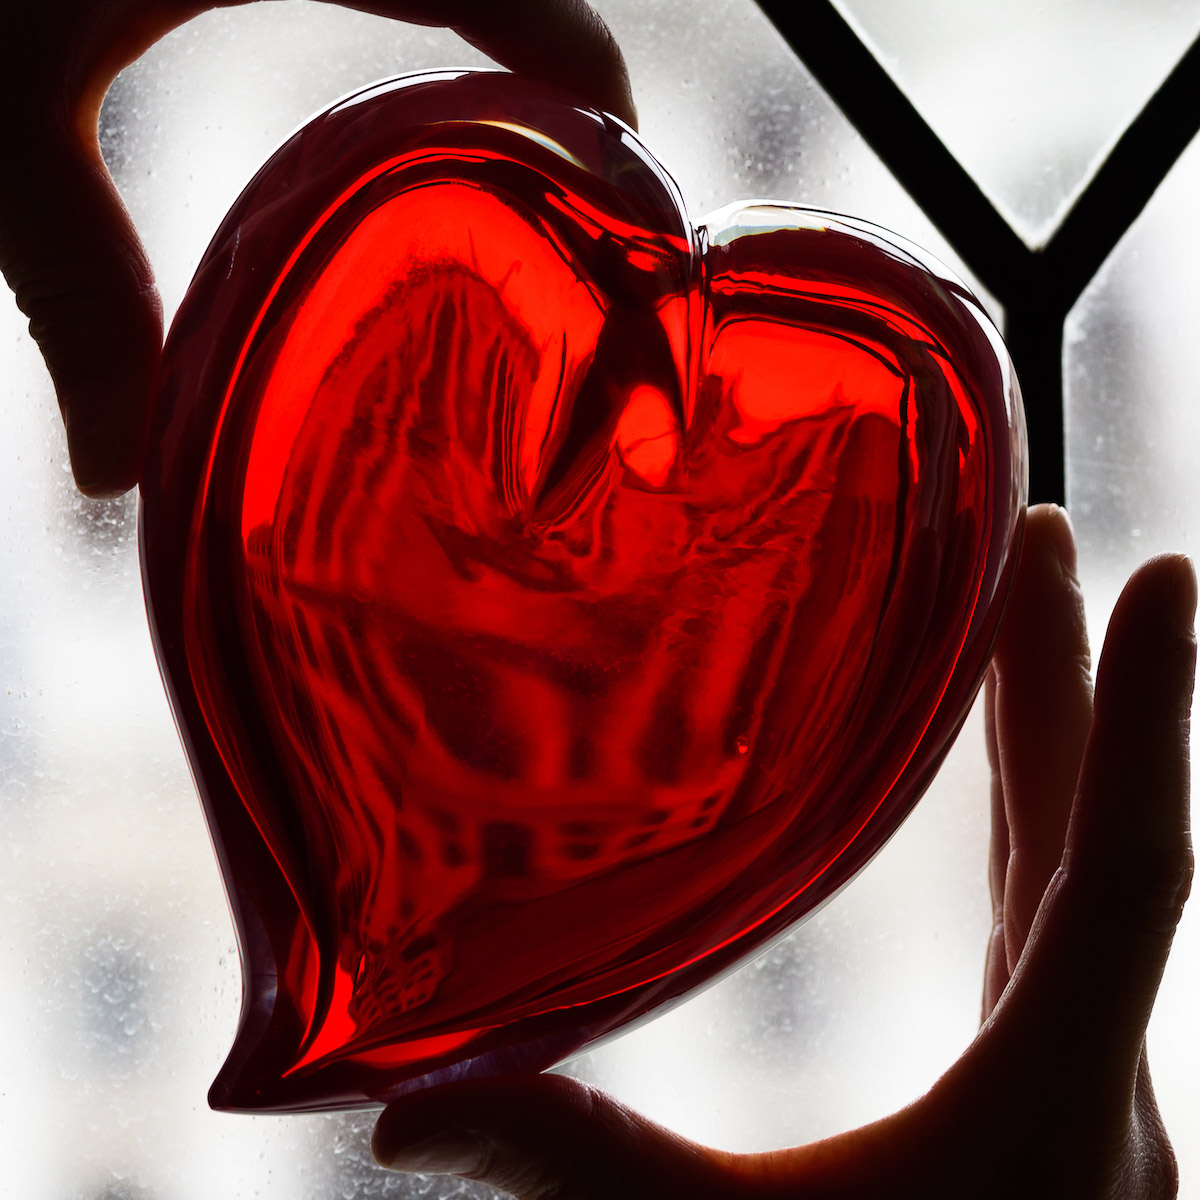 cuore-red-designer-giberto-glass